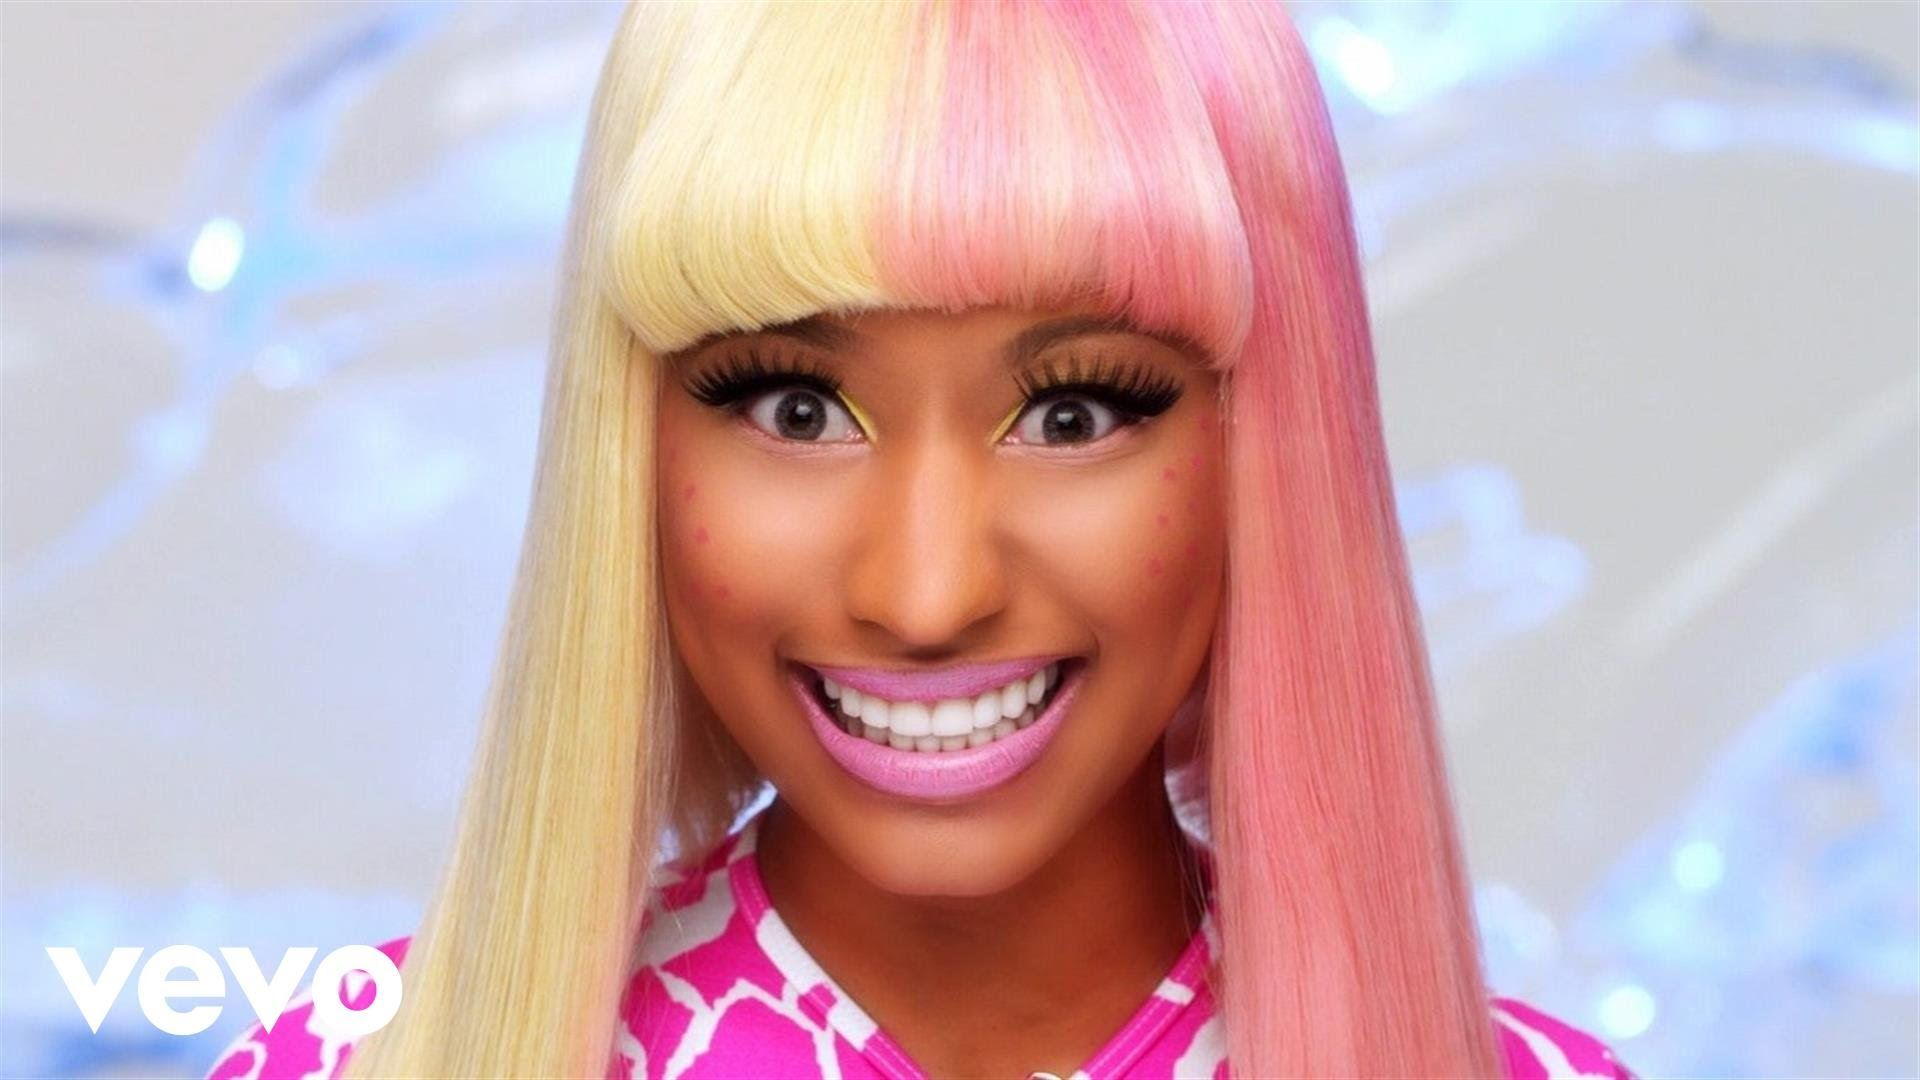 Nicki Minaj Super Bass Nicki Minaj Wig Nicki Minaj Nicki Minaj Music